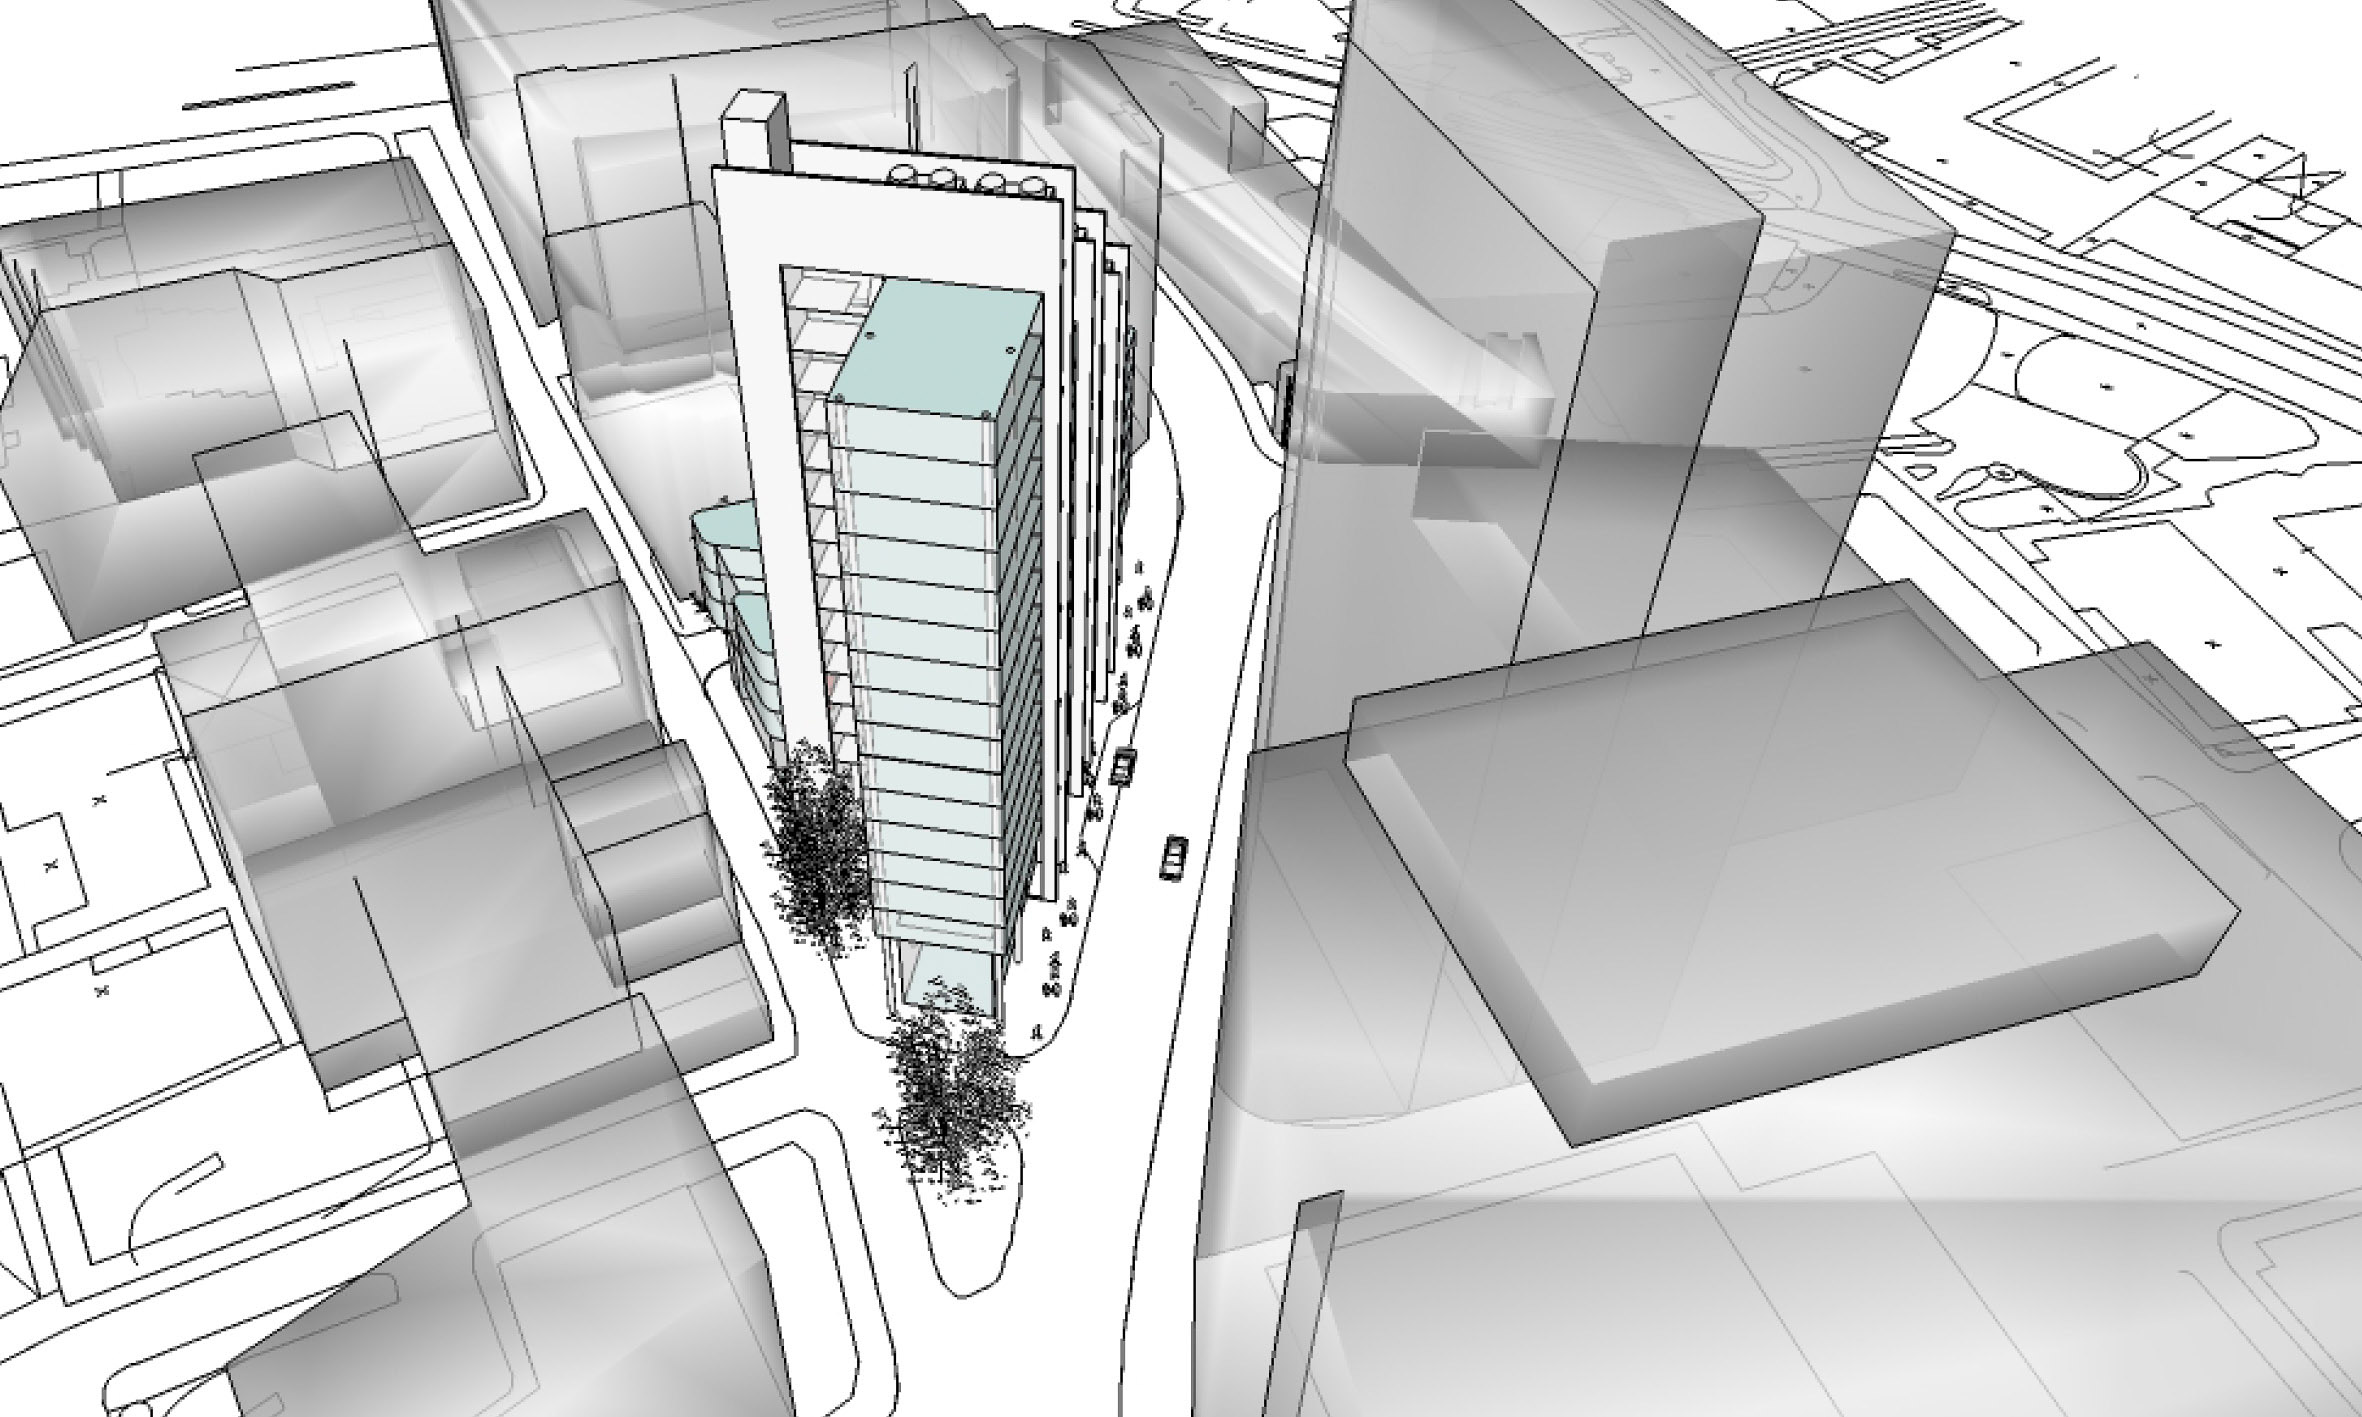 3D model - front view - New Fetter Lane - Square Mile - Modern Architecture